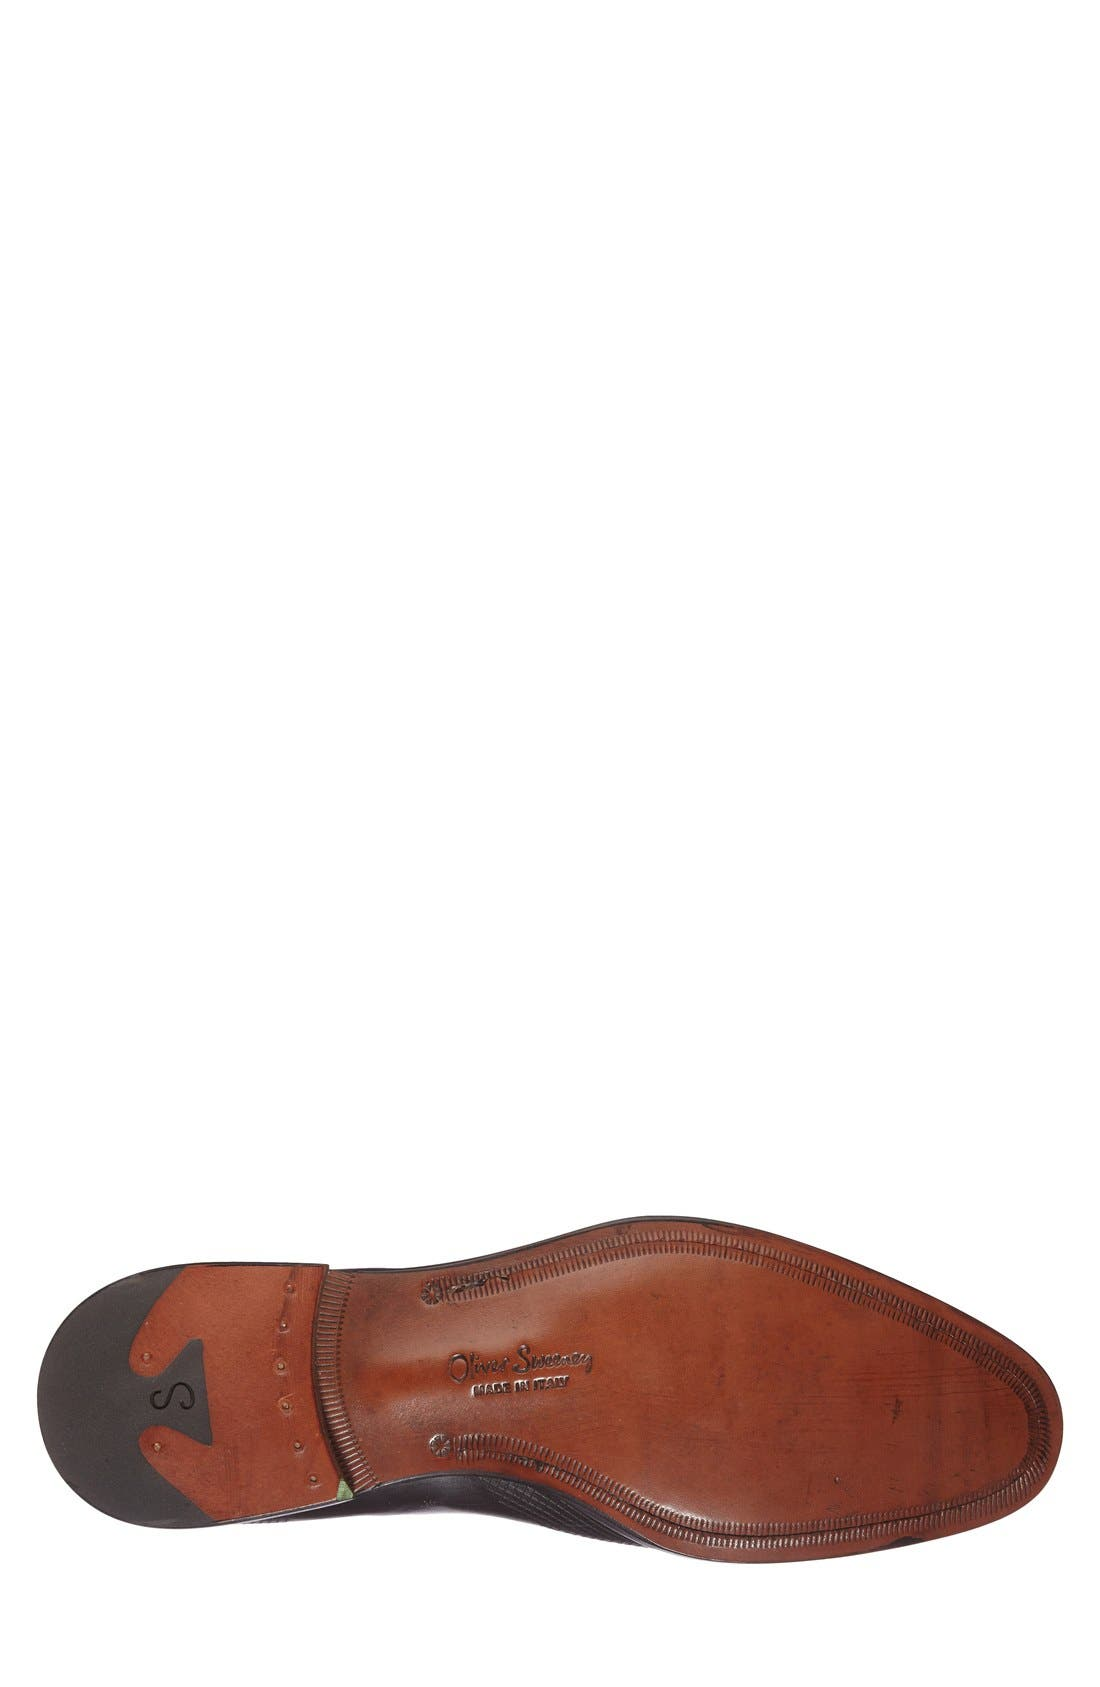 'Colladera' Wholecut Wingtip,                             Alternate thumbnail 2, color,                             001